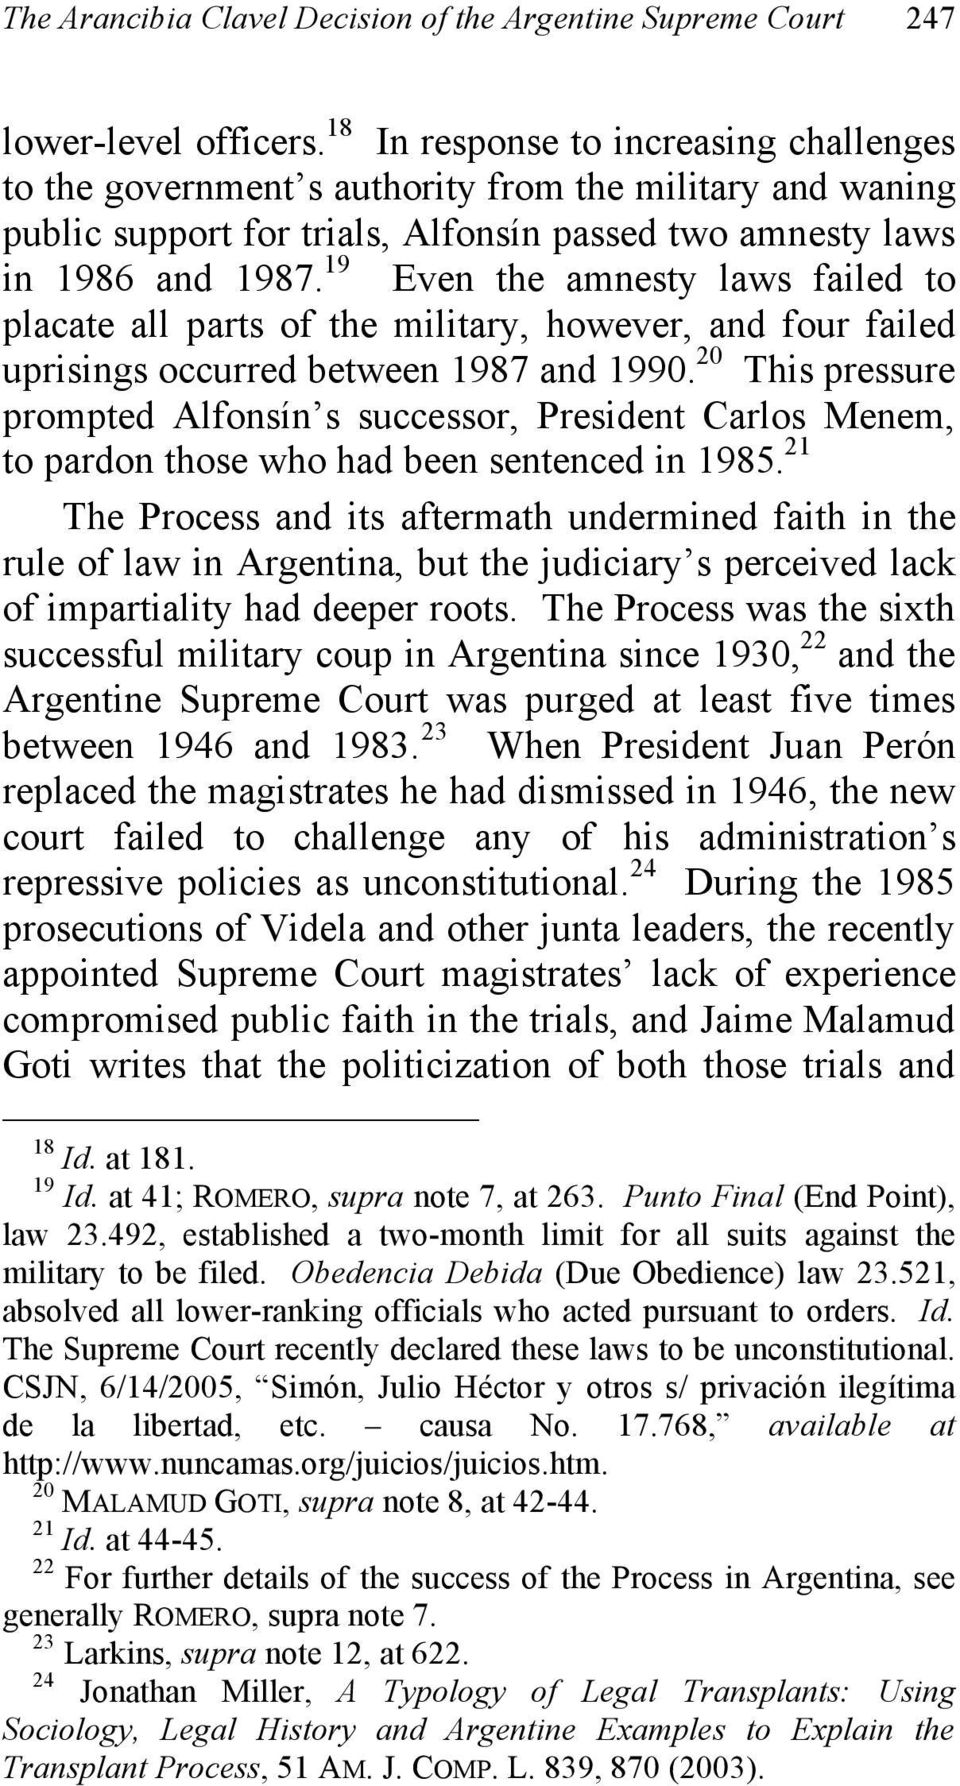 19 Even the amnesty laws failed to placate all parts of the military, however, and four failed uprisings occurred between 1987 and 1990.